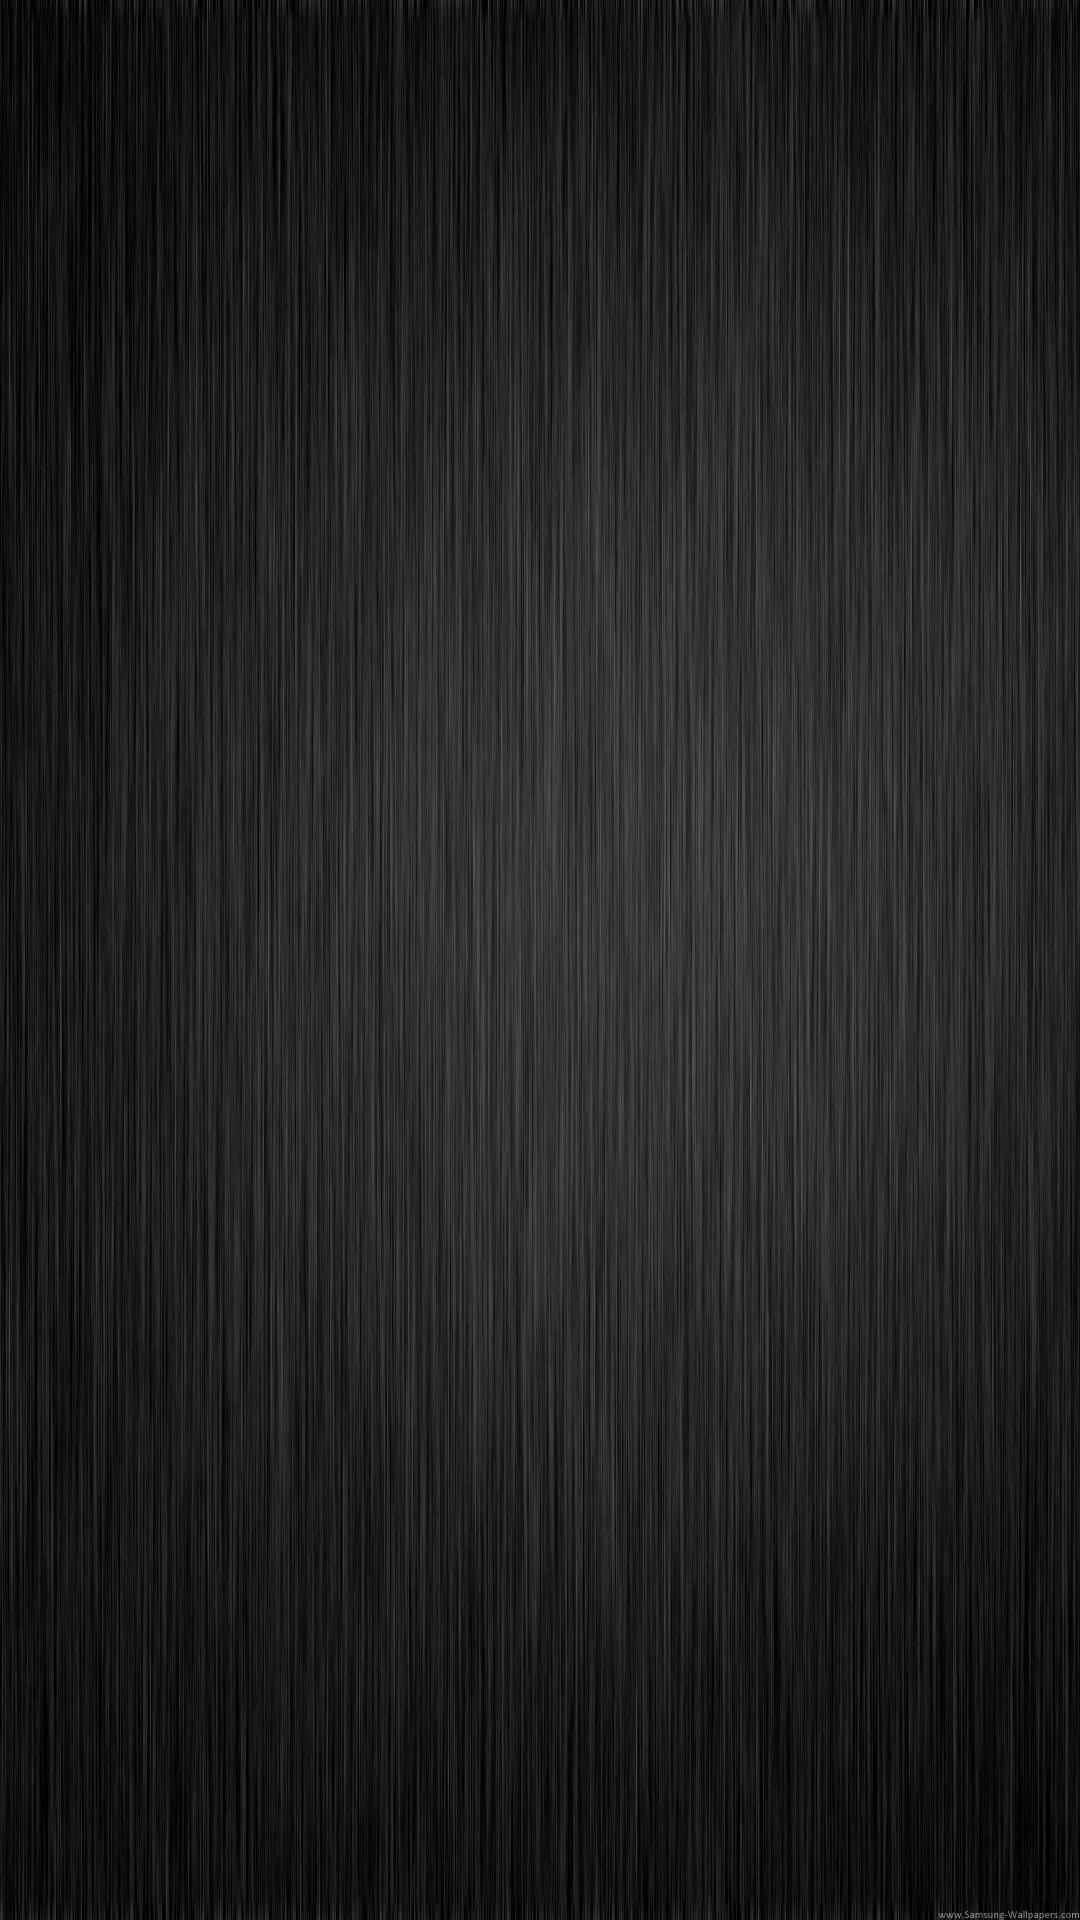 Black wallpaper for android - Black wallpaper download ...